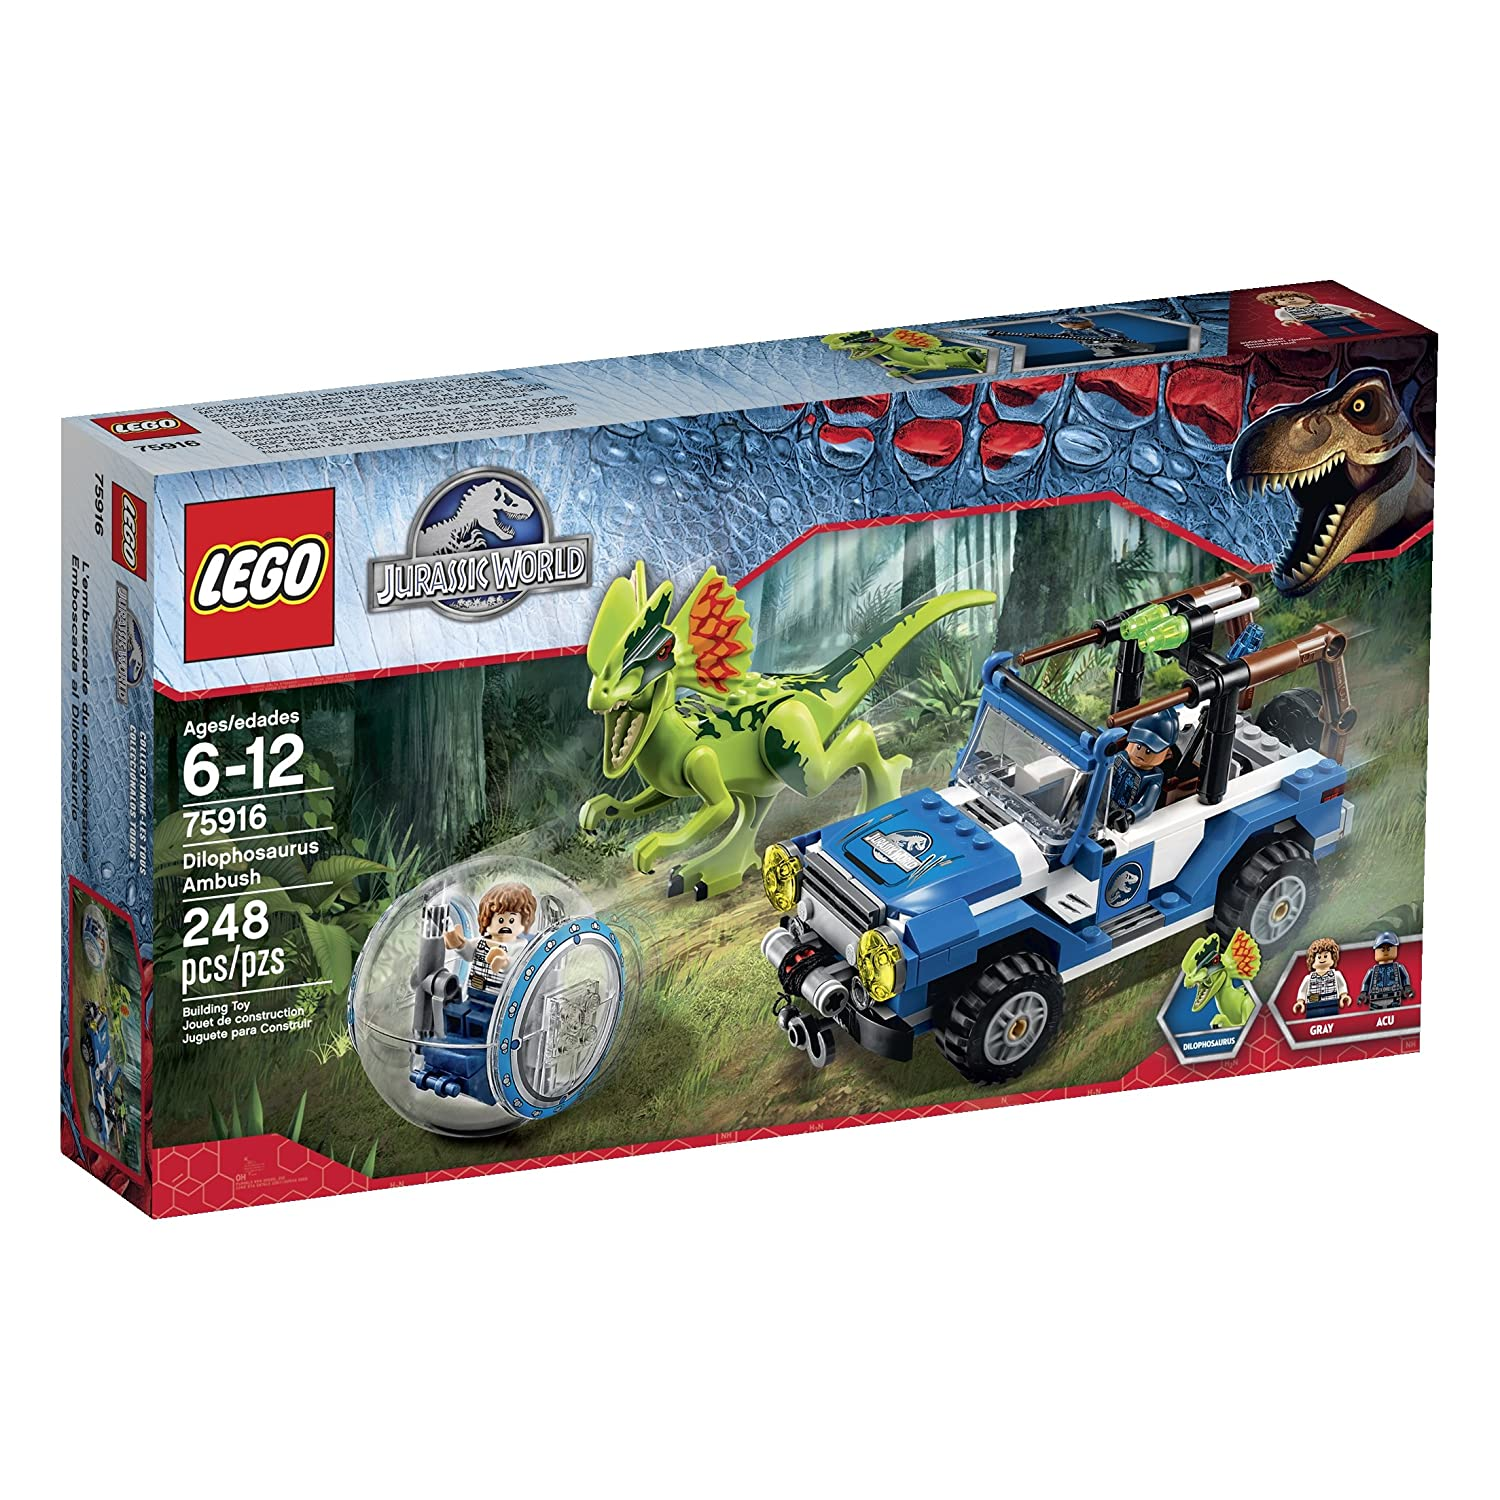 Top 8 Best Lego Dinosaurs Set Reviews in 2021 2